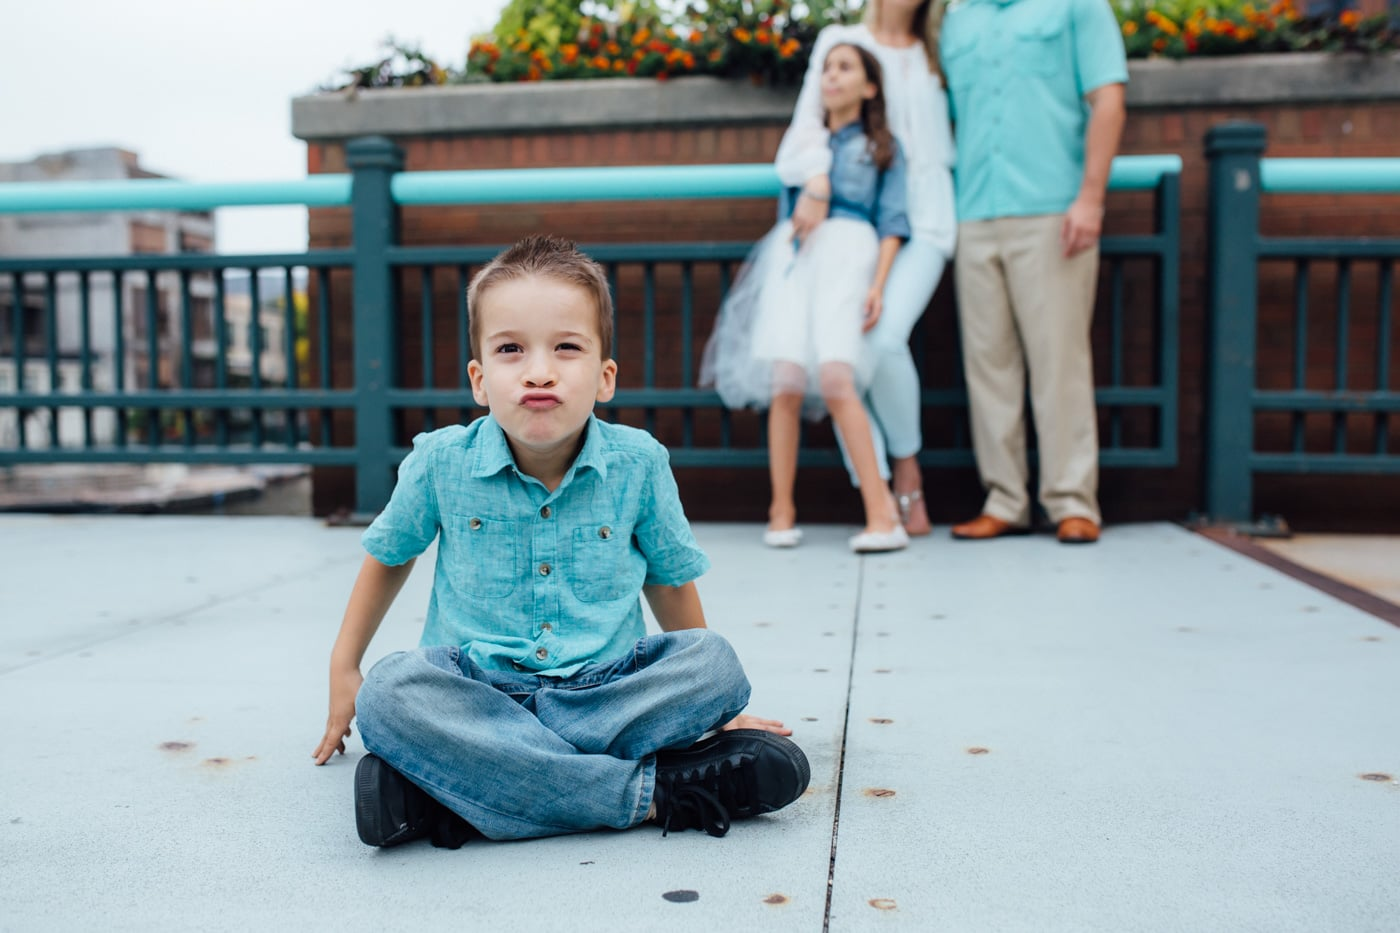 Family Session - Lifestyle Photography - Milwaukee, Wi - Double You Photography - Kat Wegrzyniak